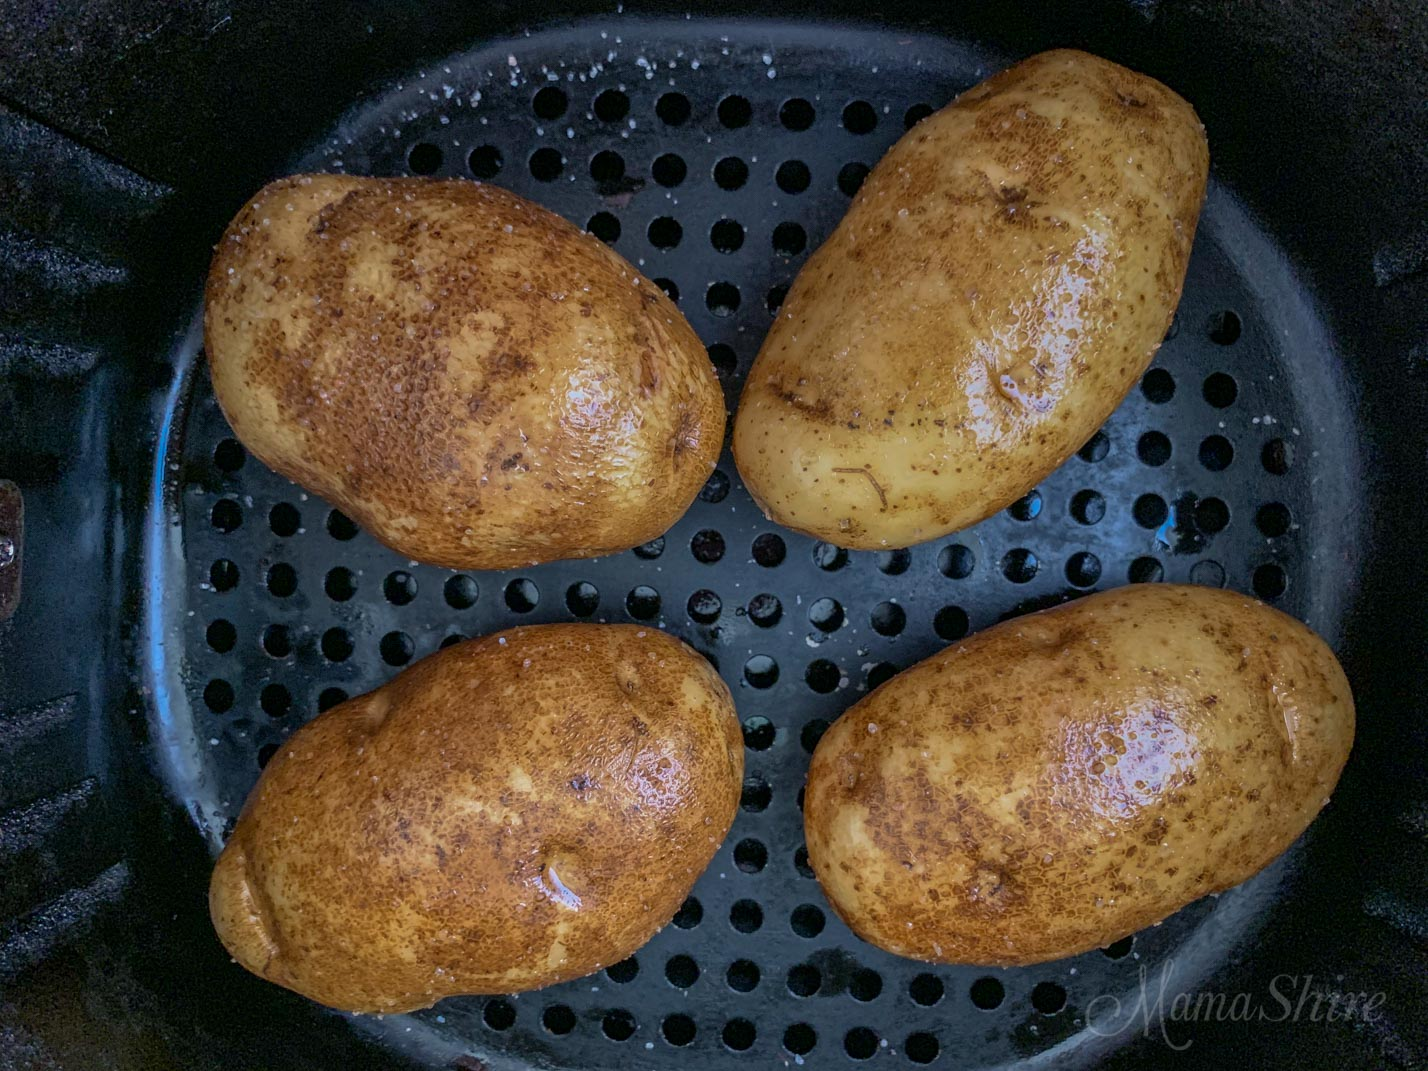 Air fryer basket with potatoes.